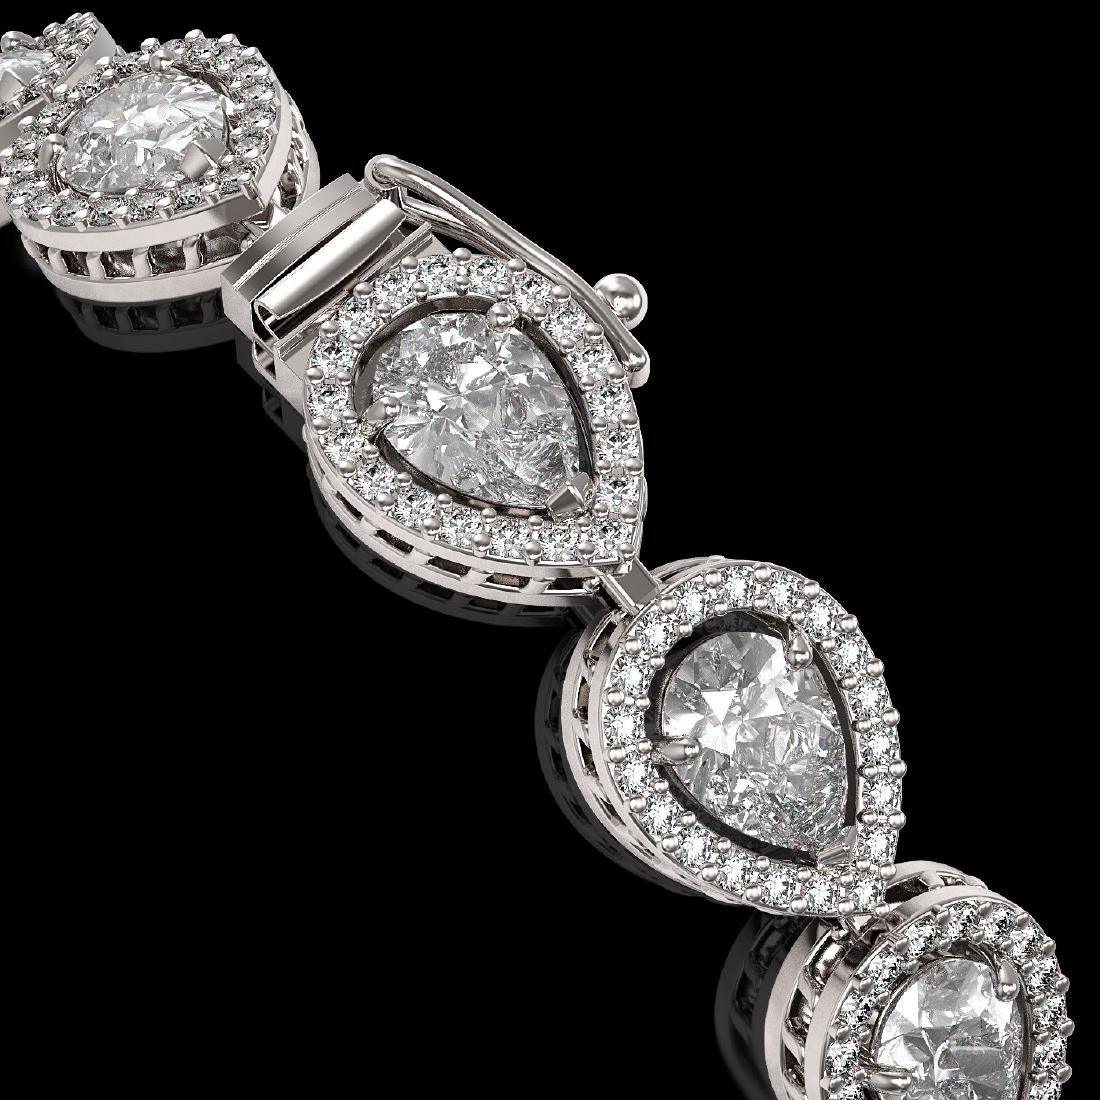 12.38 CTW Pear Diamond Designer Bracelet 18K White Gold - 3